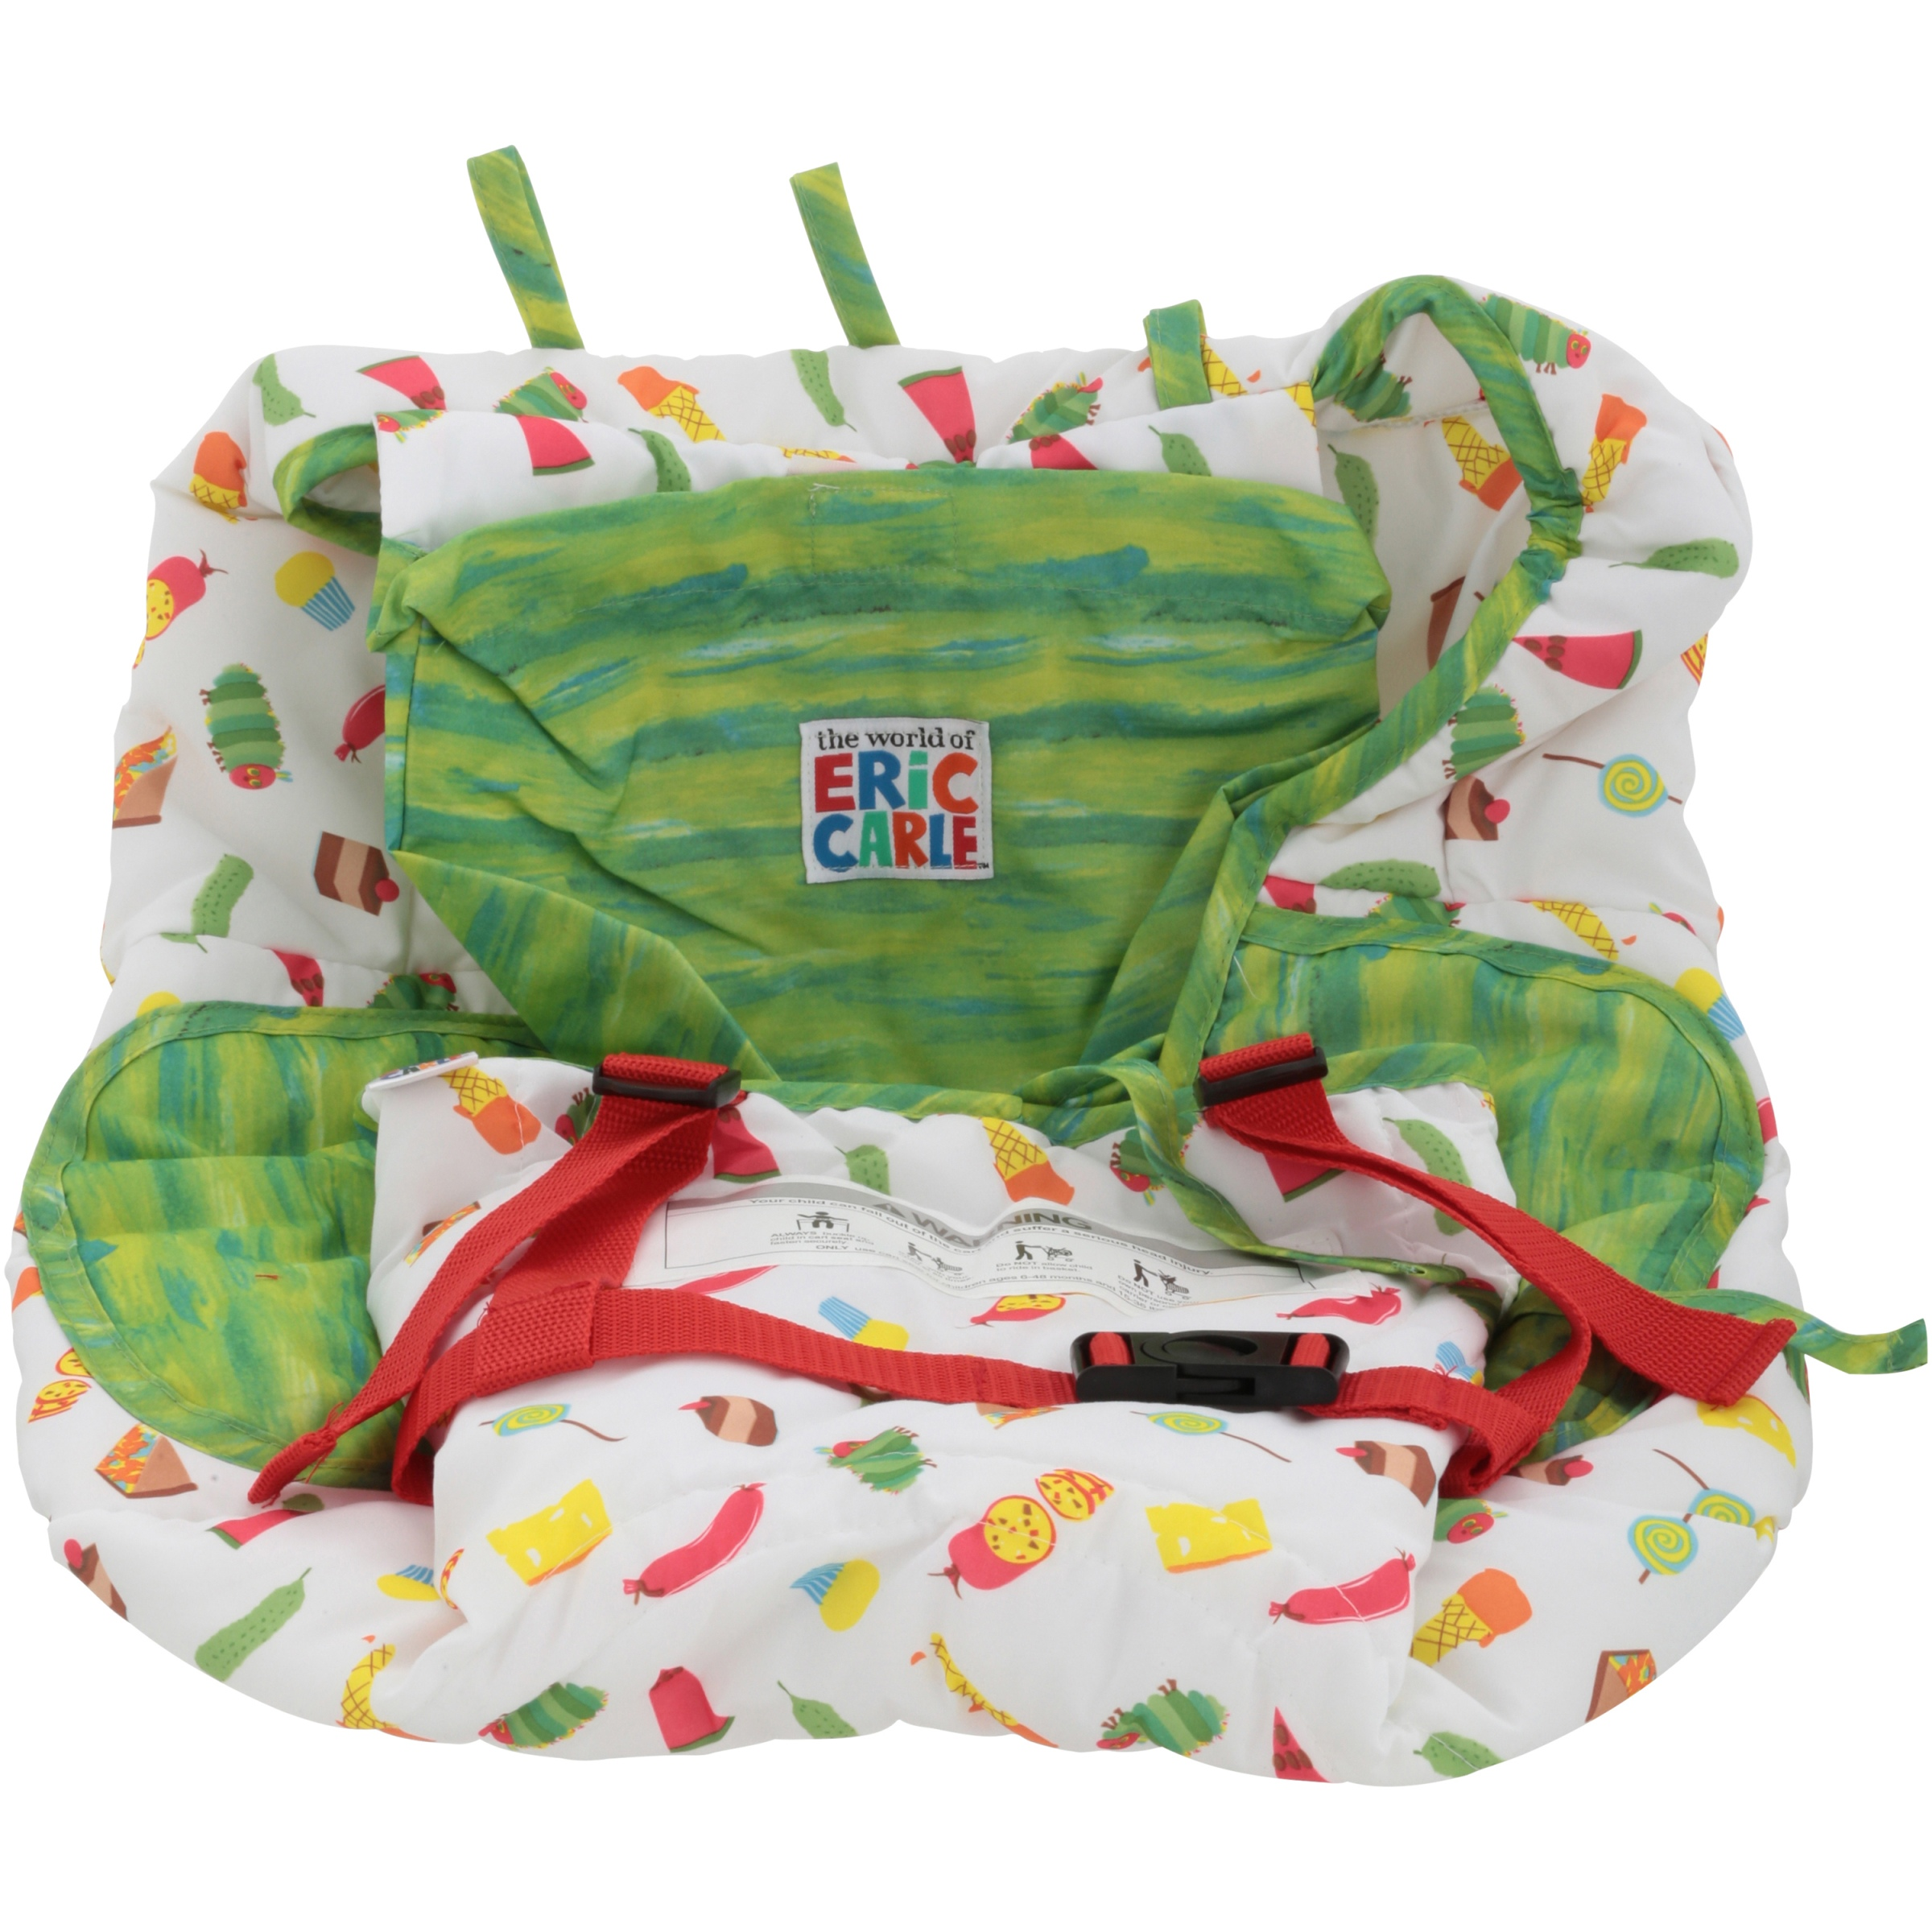 The World of Eric Carle™ The Very Hungry Caterpillar™ Shopping Cart & High Chair Cover